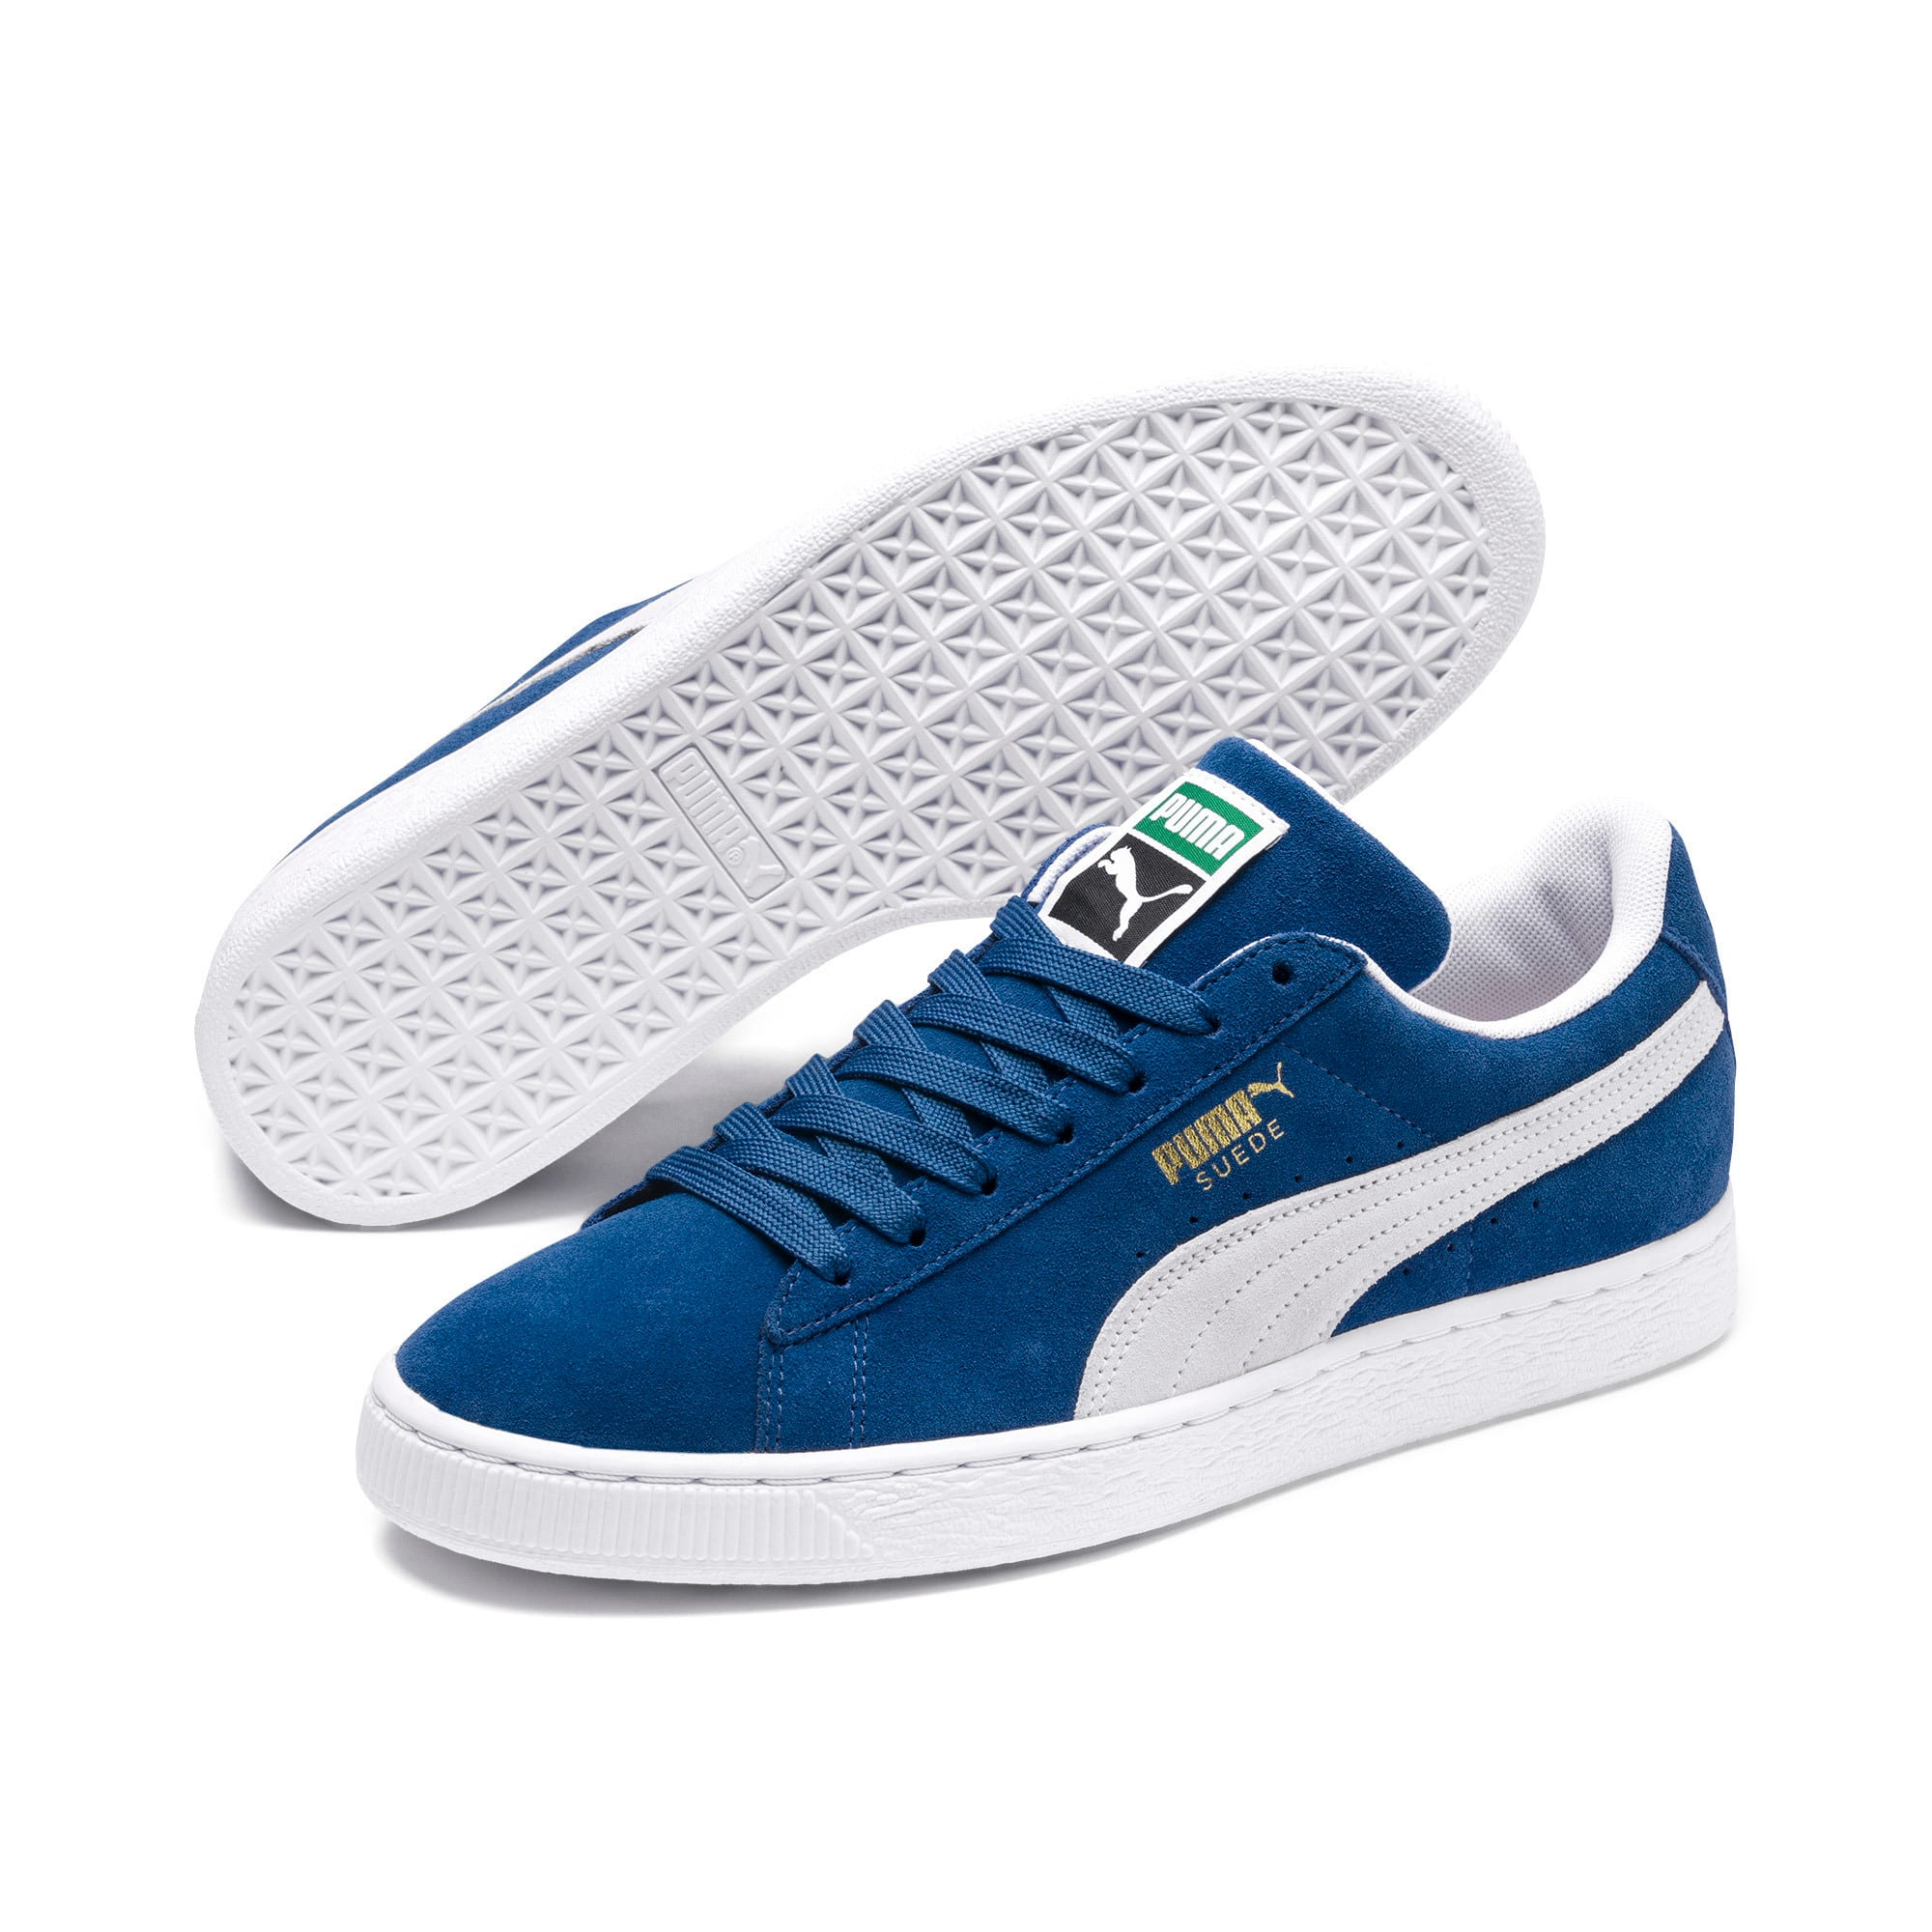 Thumbnail 2 of Suede Classic+ Sneakers, olympian blue-white, medium